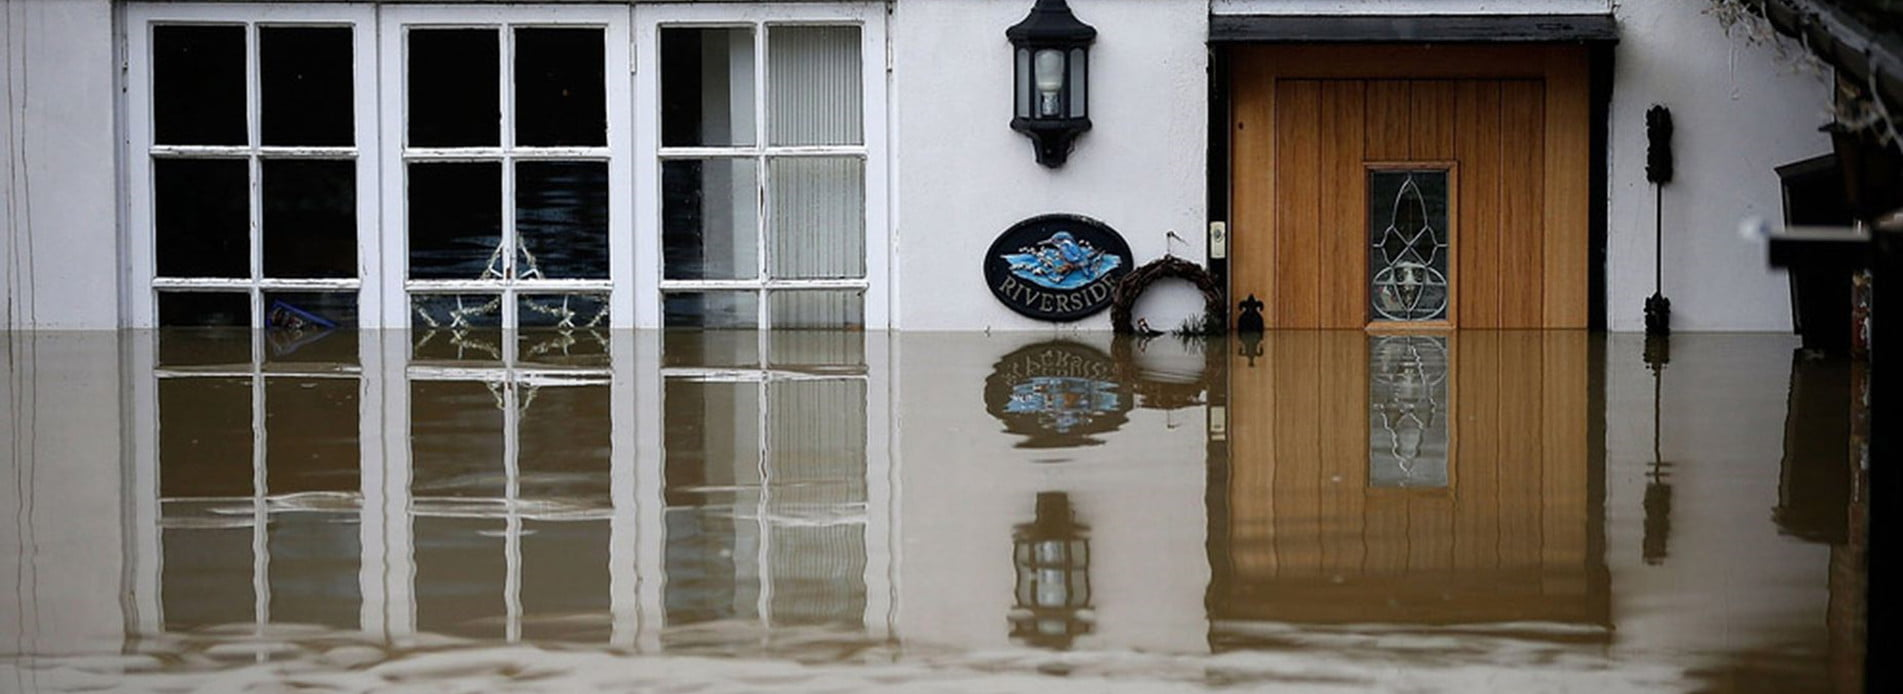 Flooded-home-headline-image